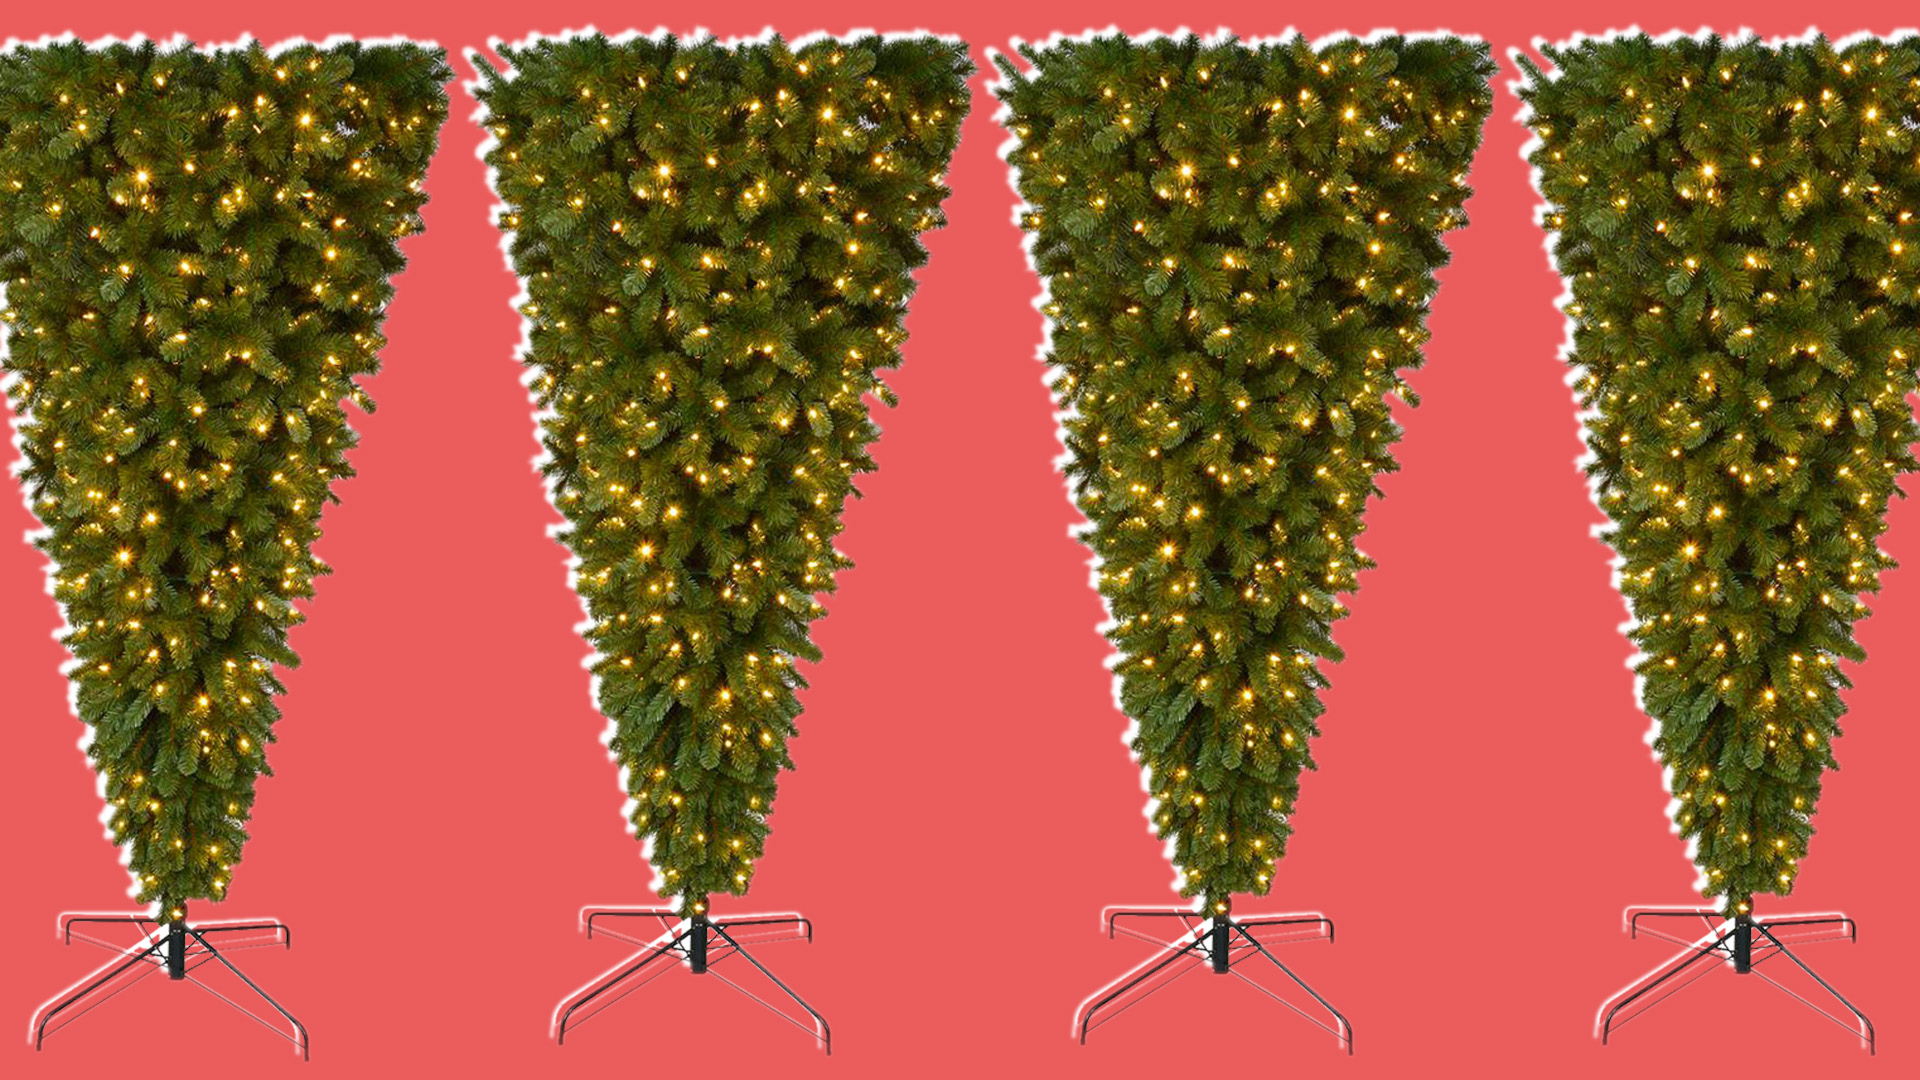 upside down christmas trees are a trend but not everyone finds them festive - Upside Down Christmas Tree Decorated